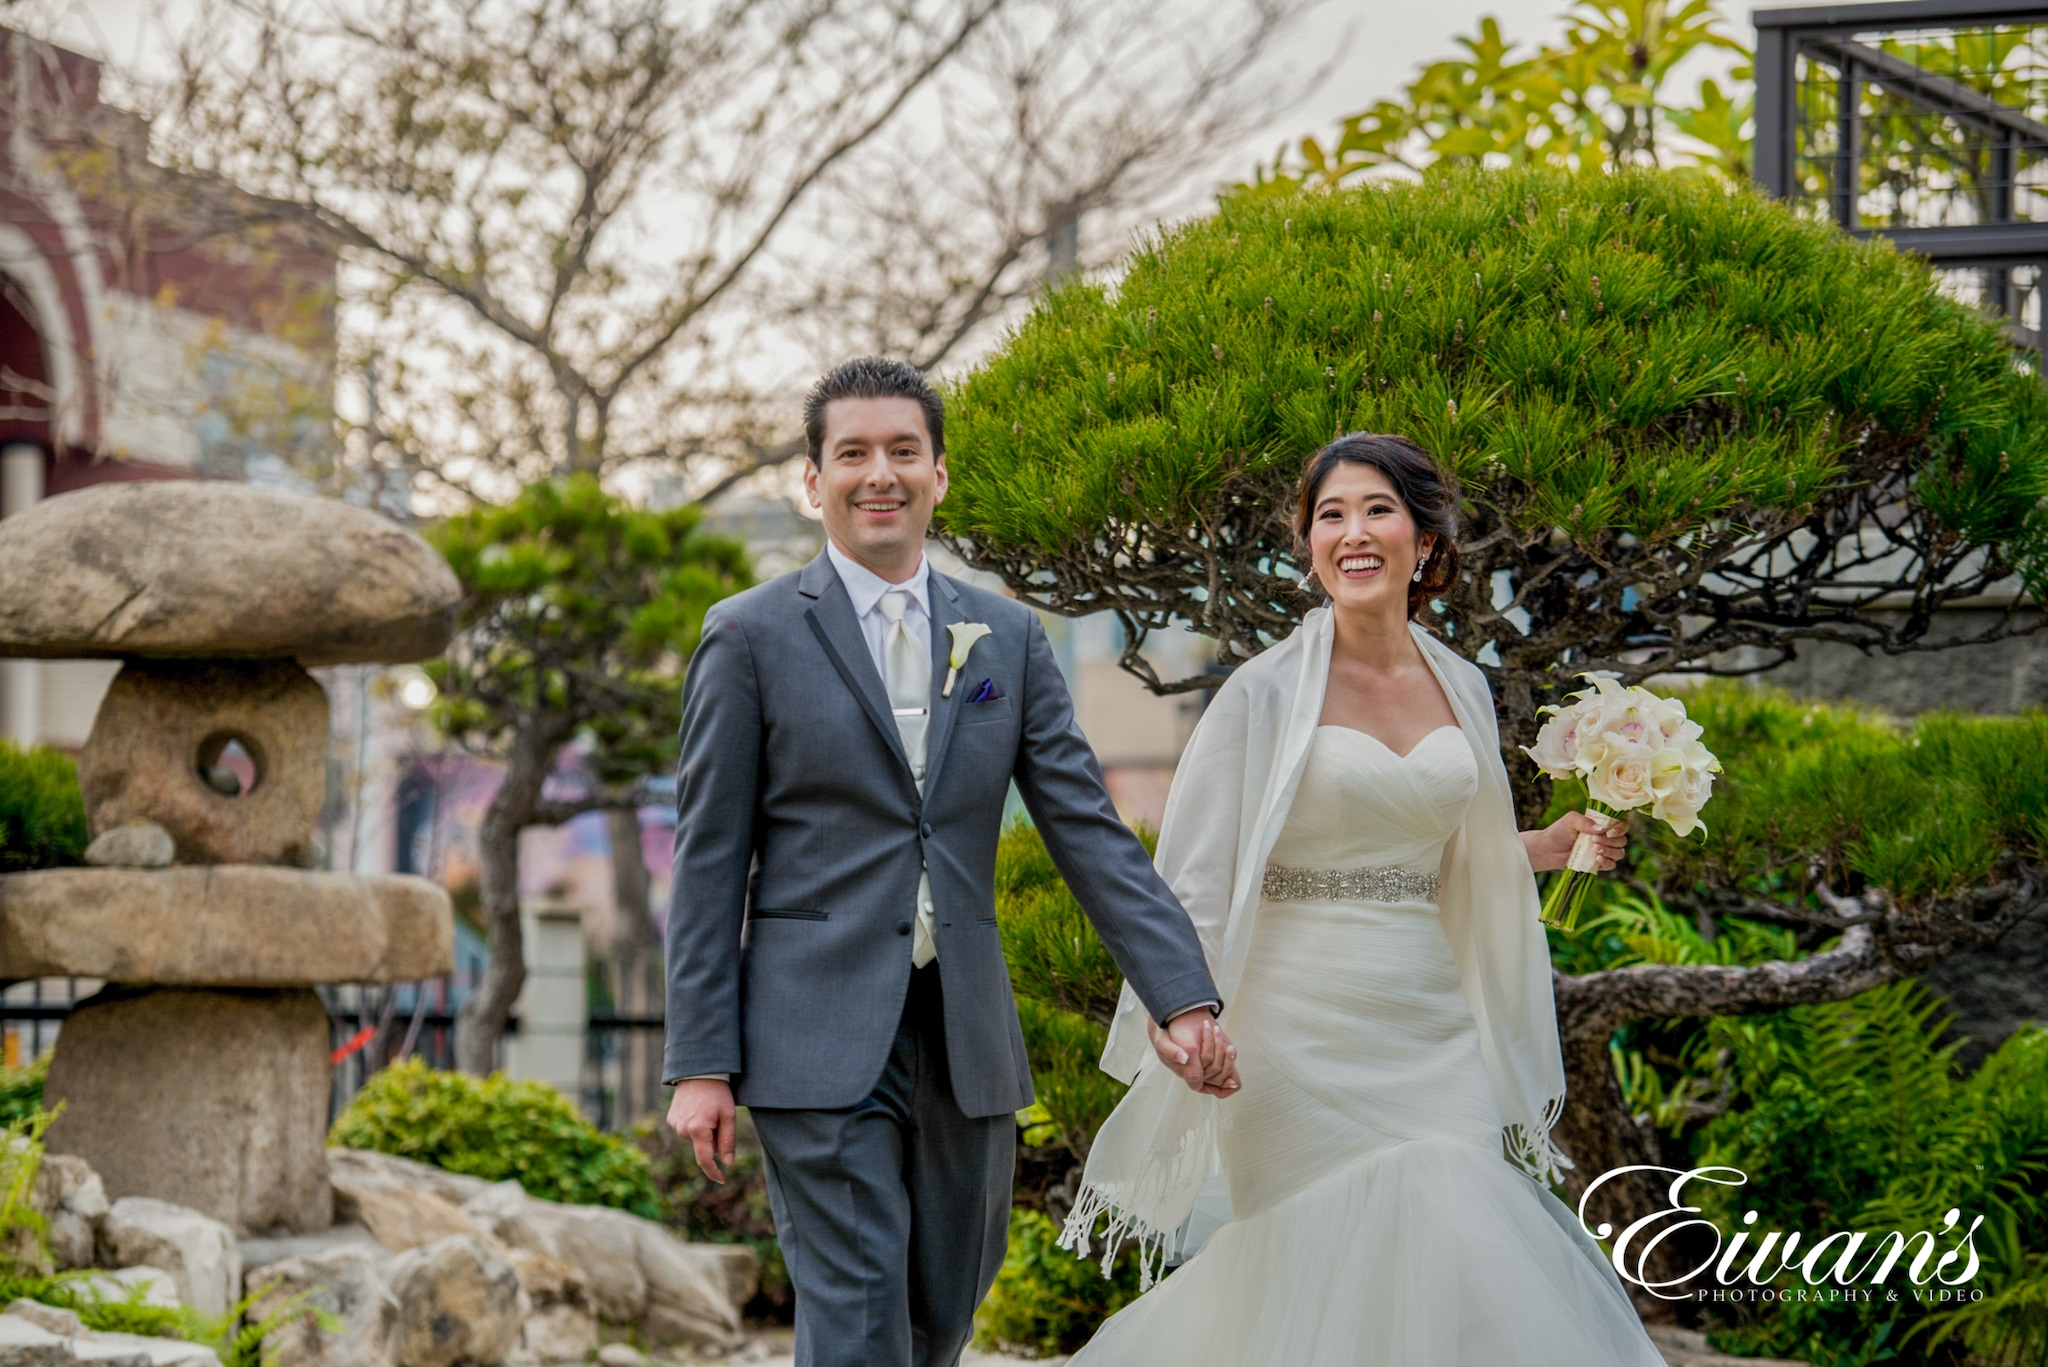 image of a married couple walking outside